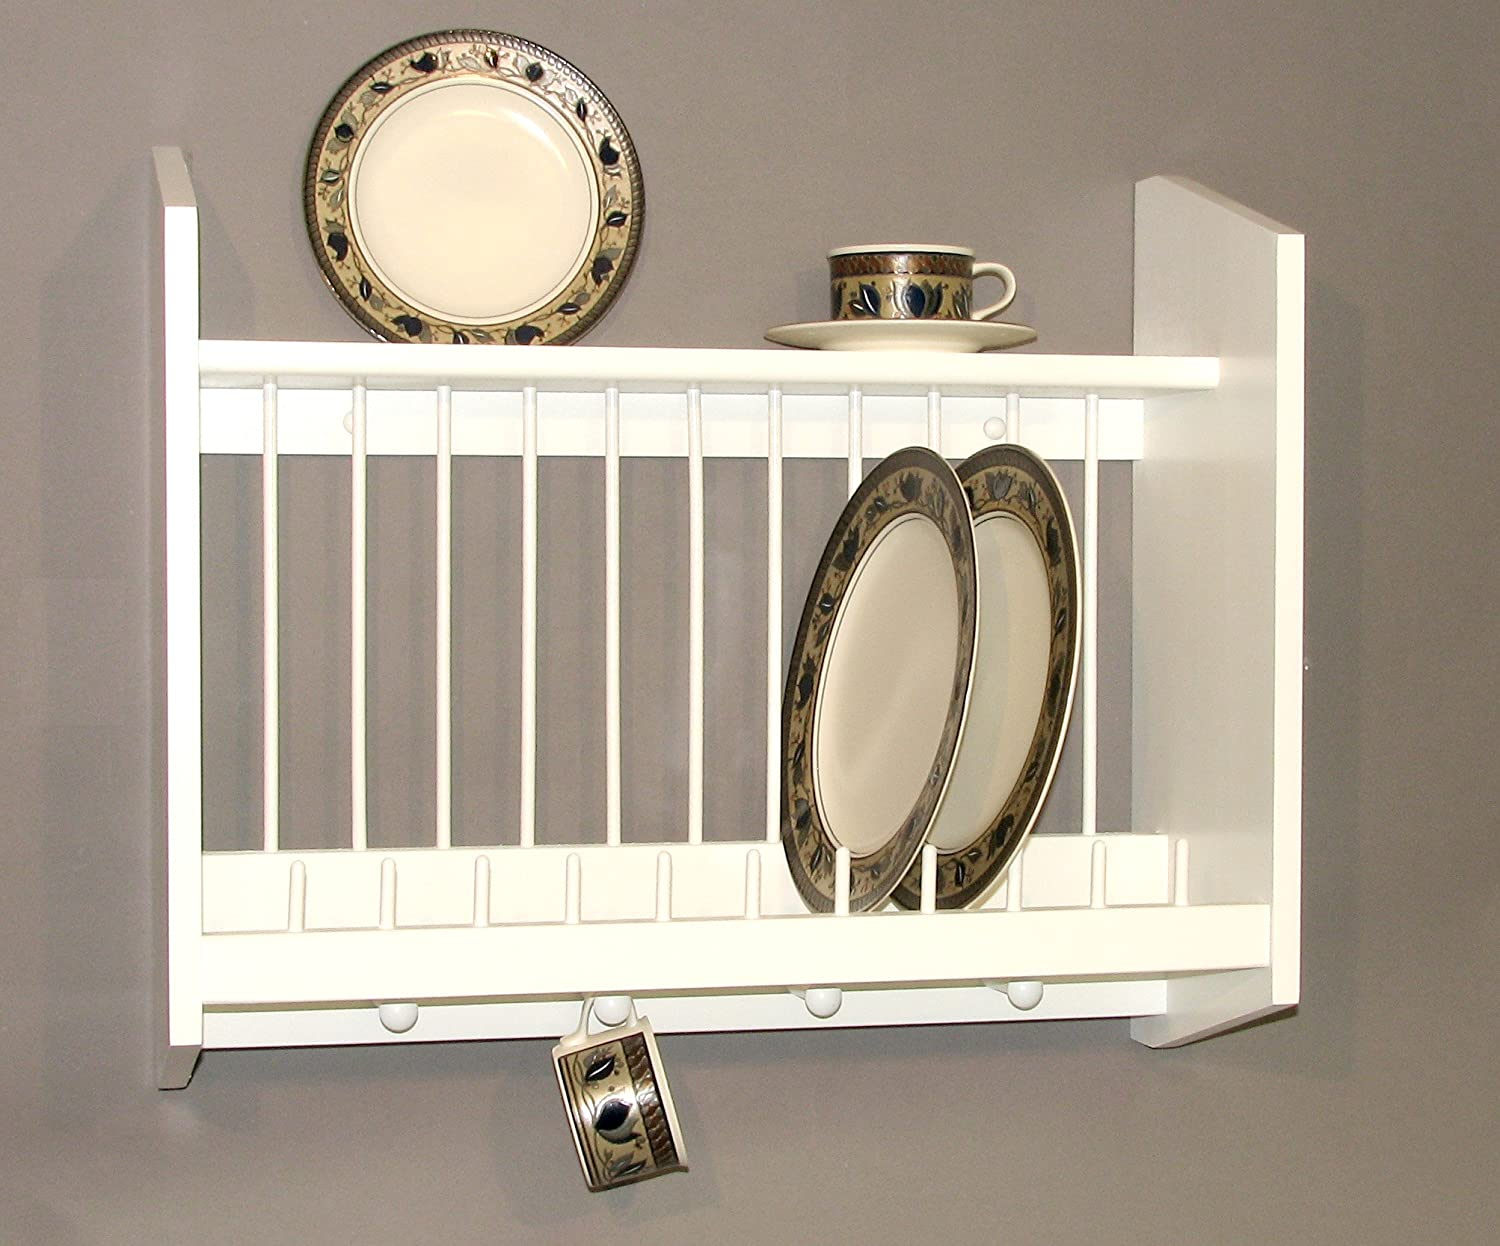 Amazon.com Plate Rack with Shelf Natural MADE IN USA Dish Racks Kitchen \u0026 Dining & Amazon.com: Plate Rack with Shelf Natural MADE IN USA: Dish Racks ...